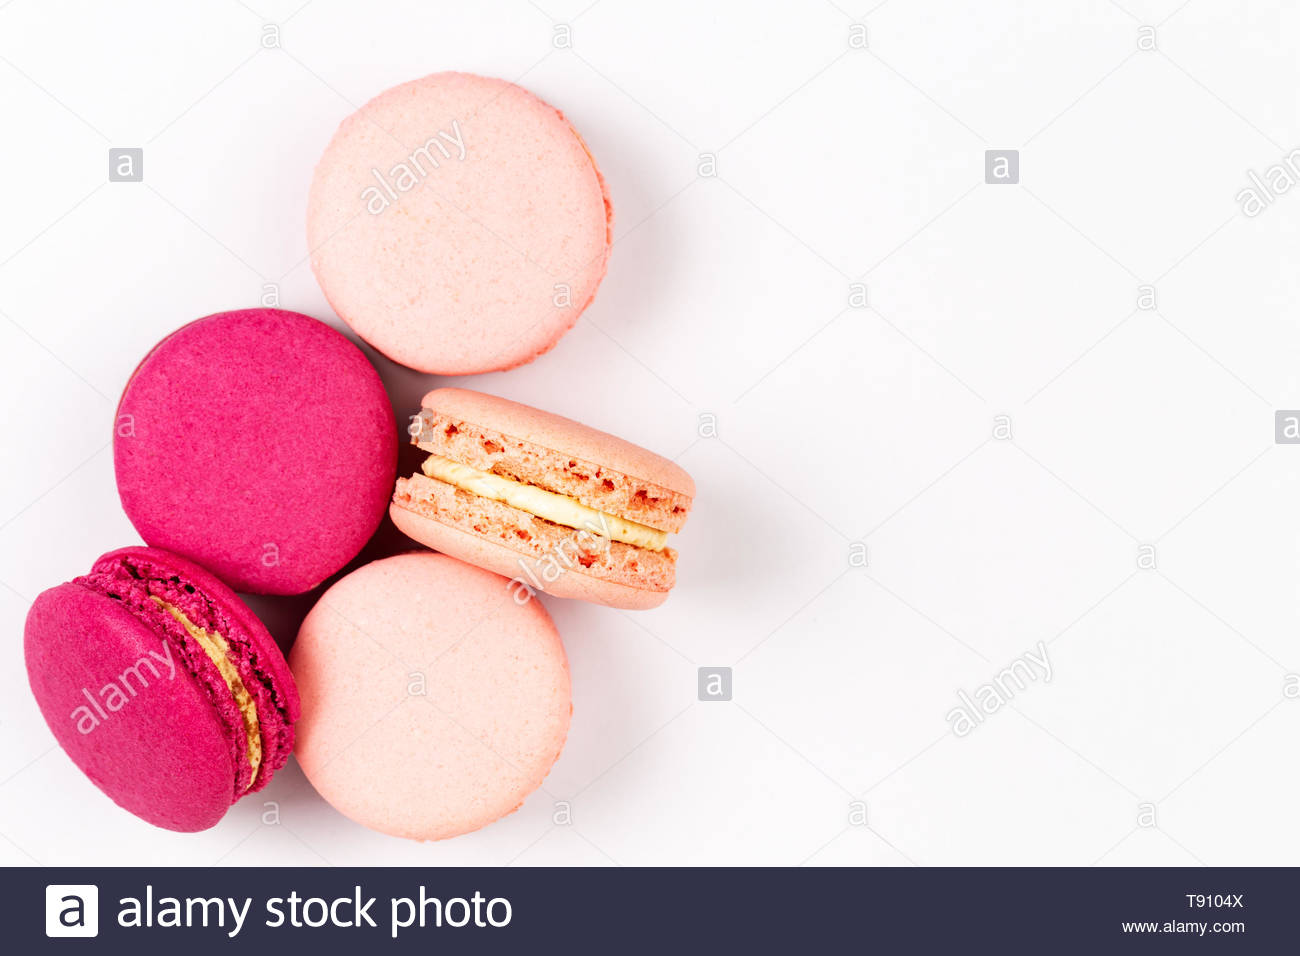 French pink and fuchsia magenta macarons or macaroons, over a white background with copyspace, top view. - Stock Image